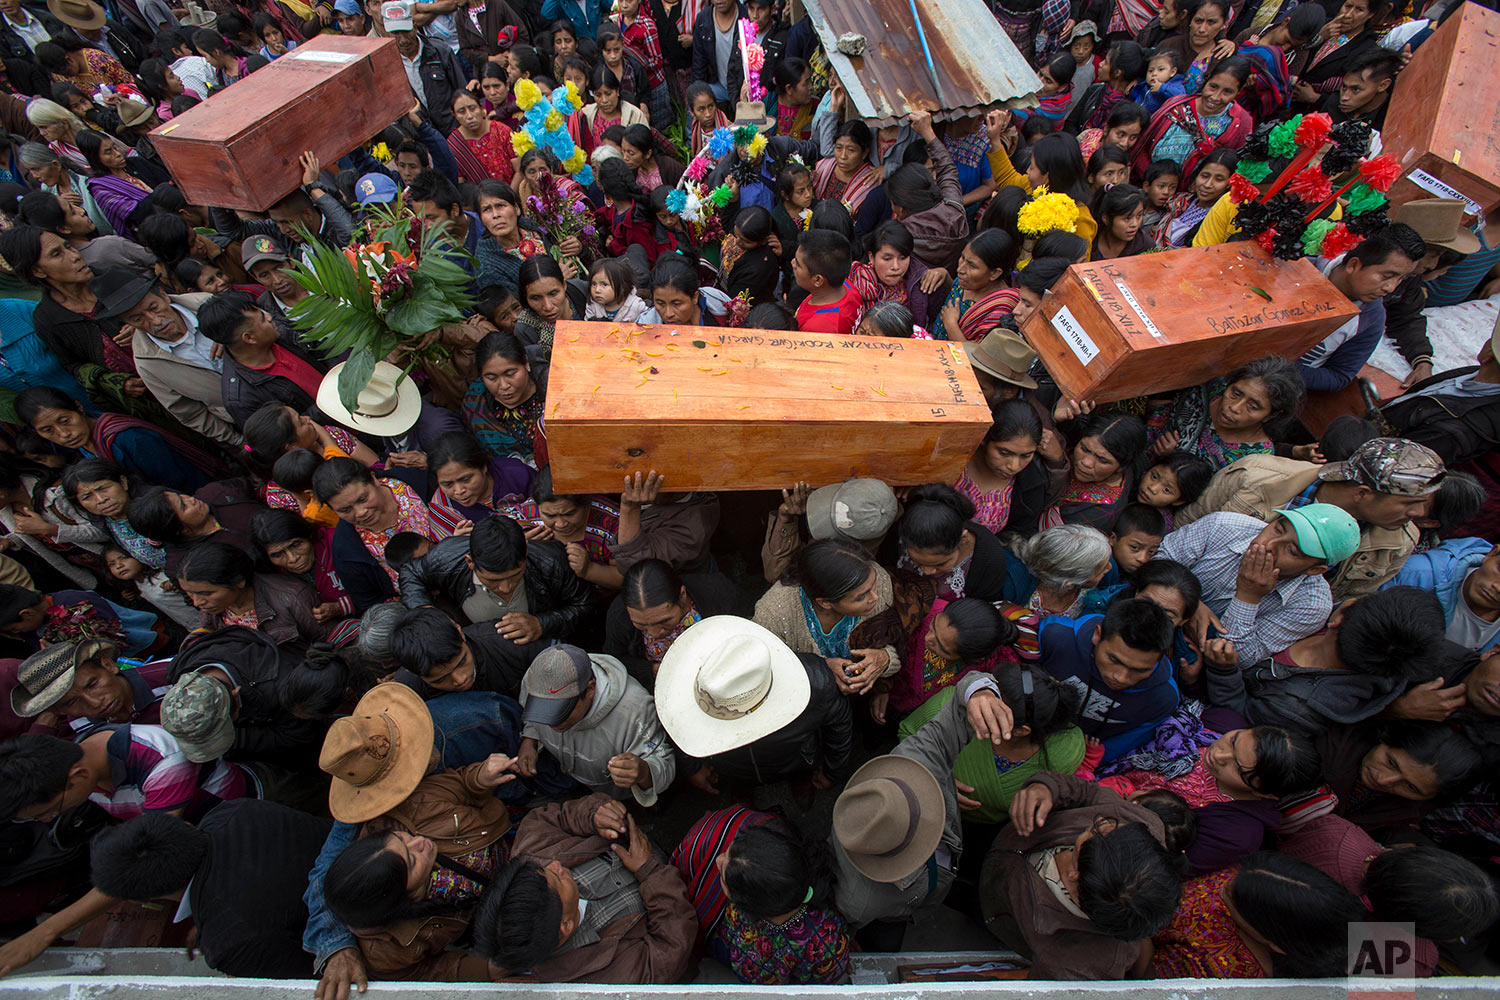 People carry coffins with the remains of civil war victims, to place in niche graves in Santa Avelina, Guatemala, Thursday, Nov. 30, 2017. After seven years of work by forensic anthropologists, including DNA tests to locate relatives, the remains of 172 indigenous Ixil Mayans killed during the civil war between 1978 and 1982 were buried in their community in the western mountains of Guatemala.  (AP Photo/Luis Soto)